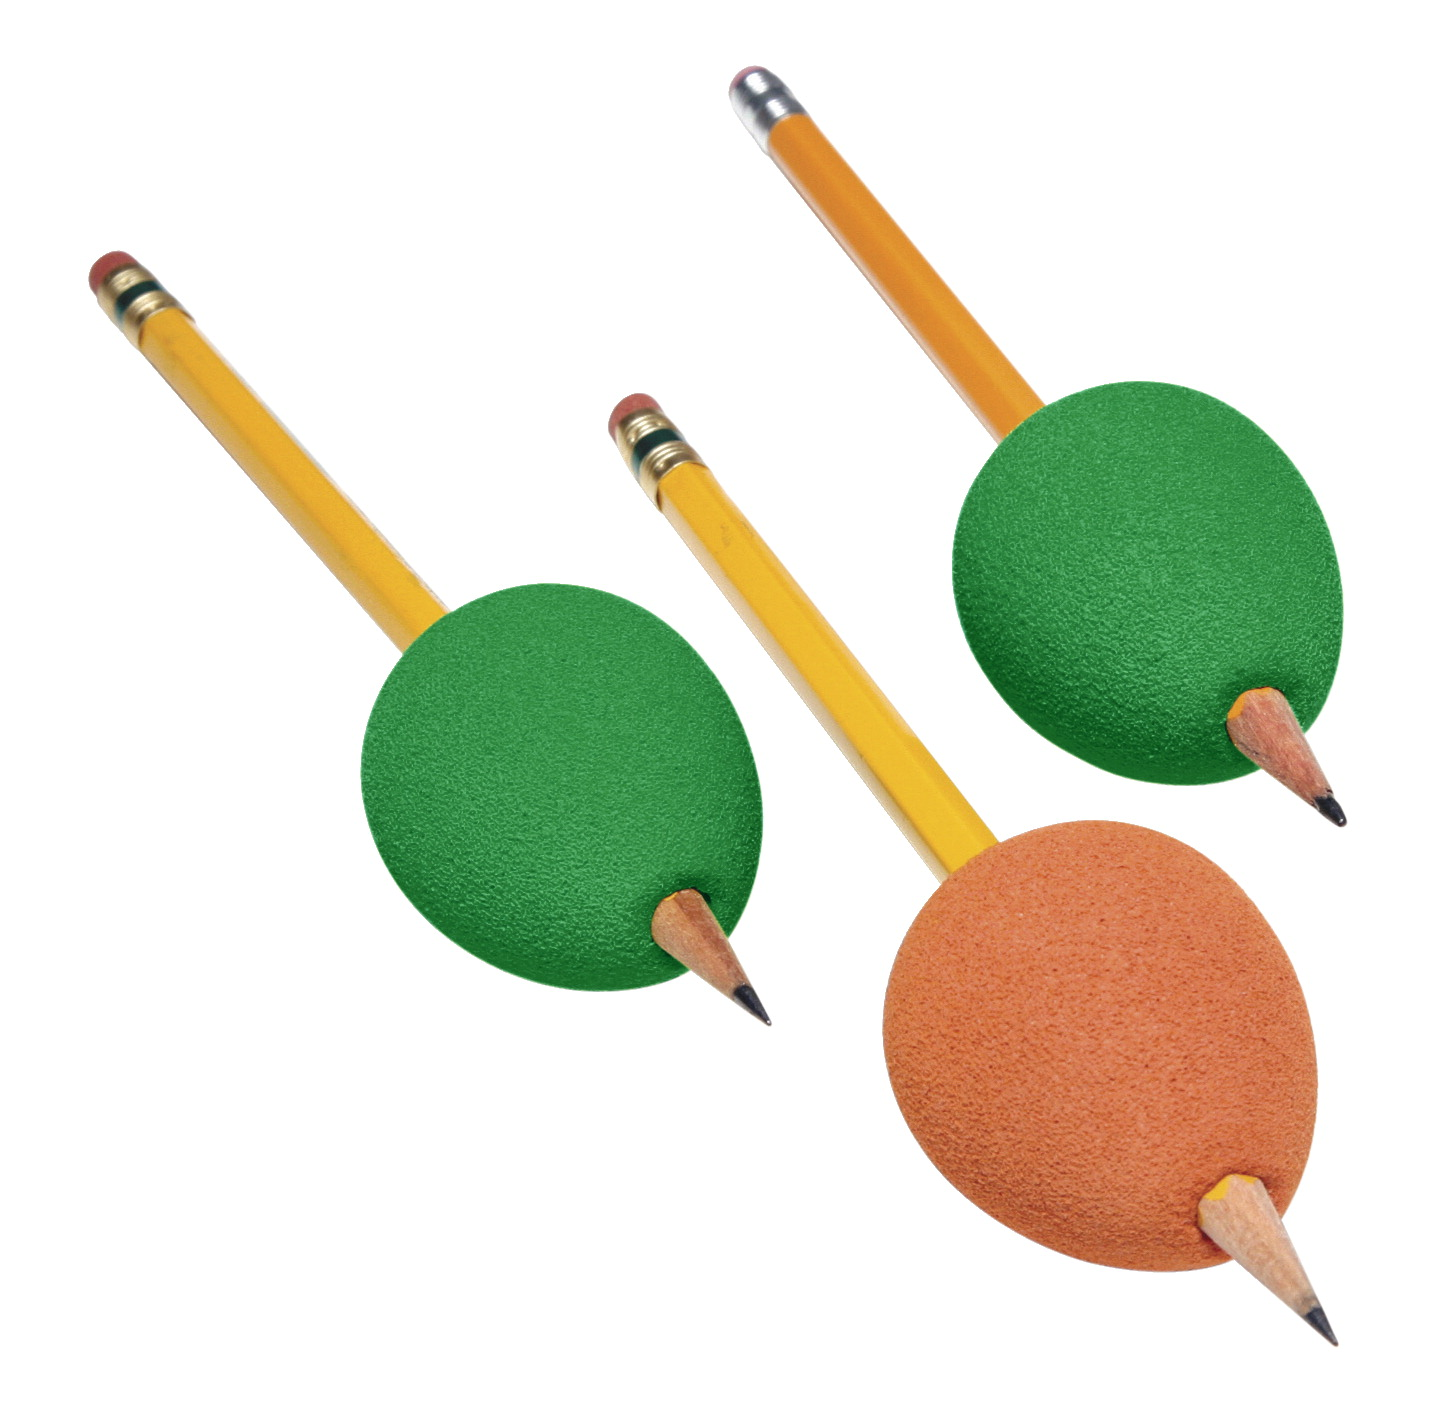 Abilitations Egg Ohs Handwriting Grips, Set of 3